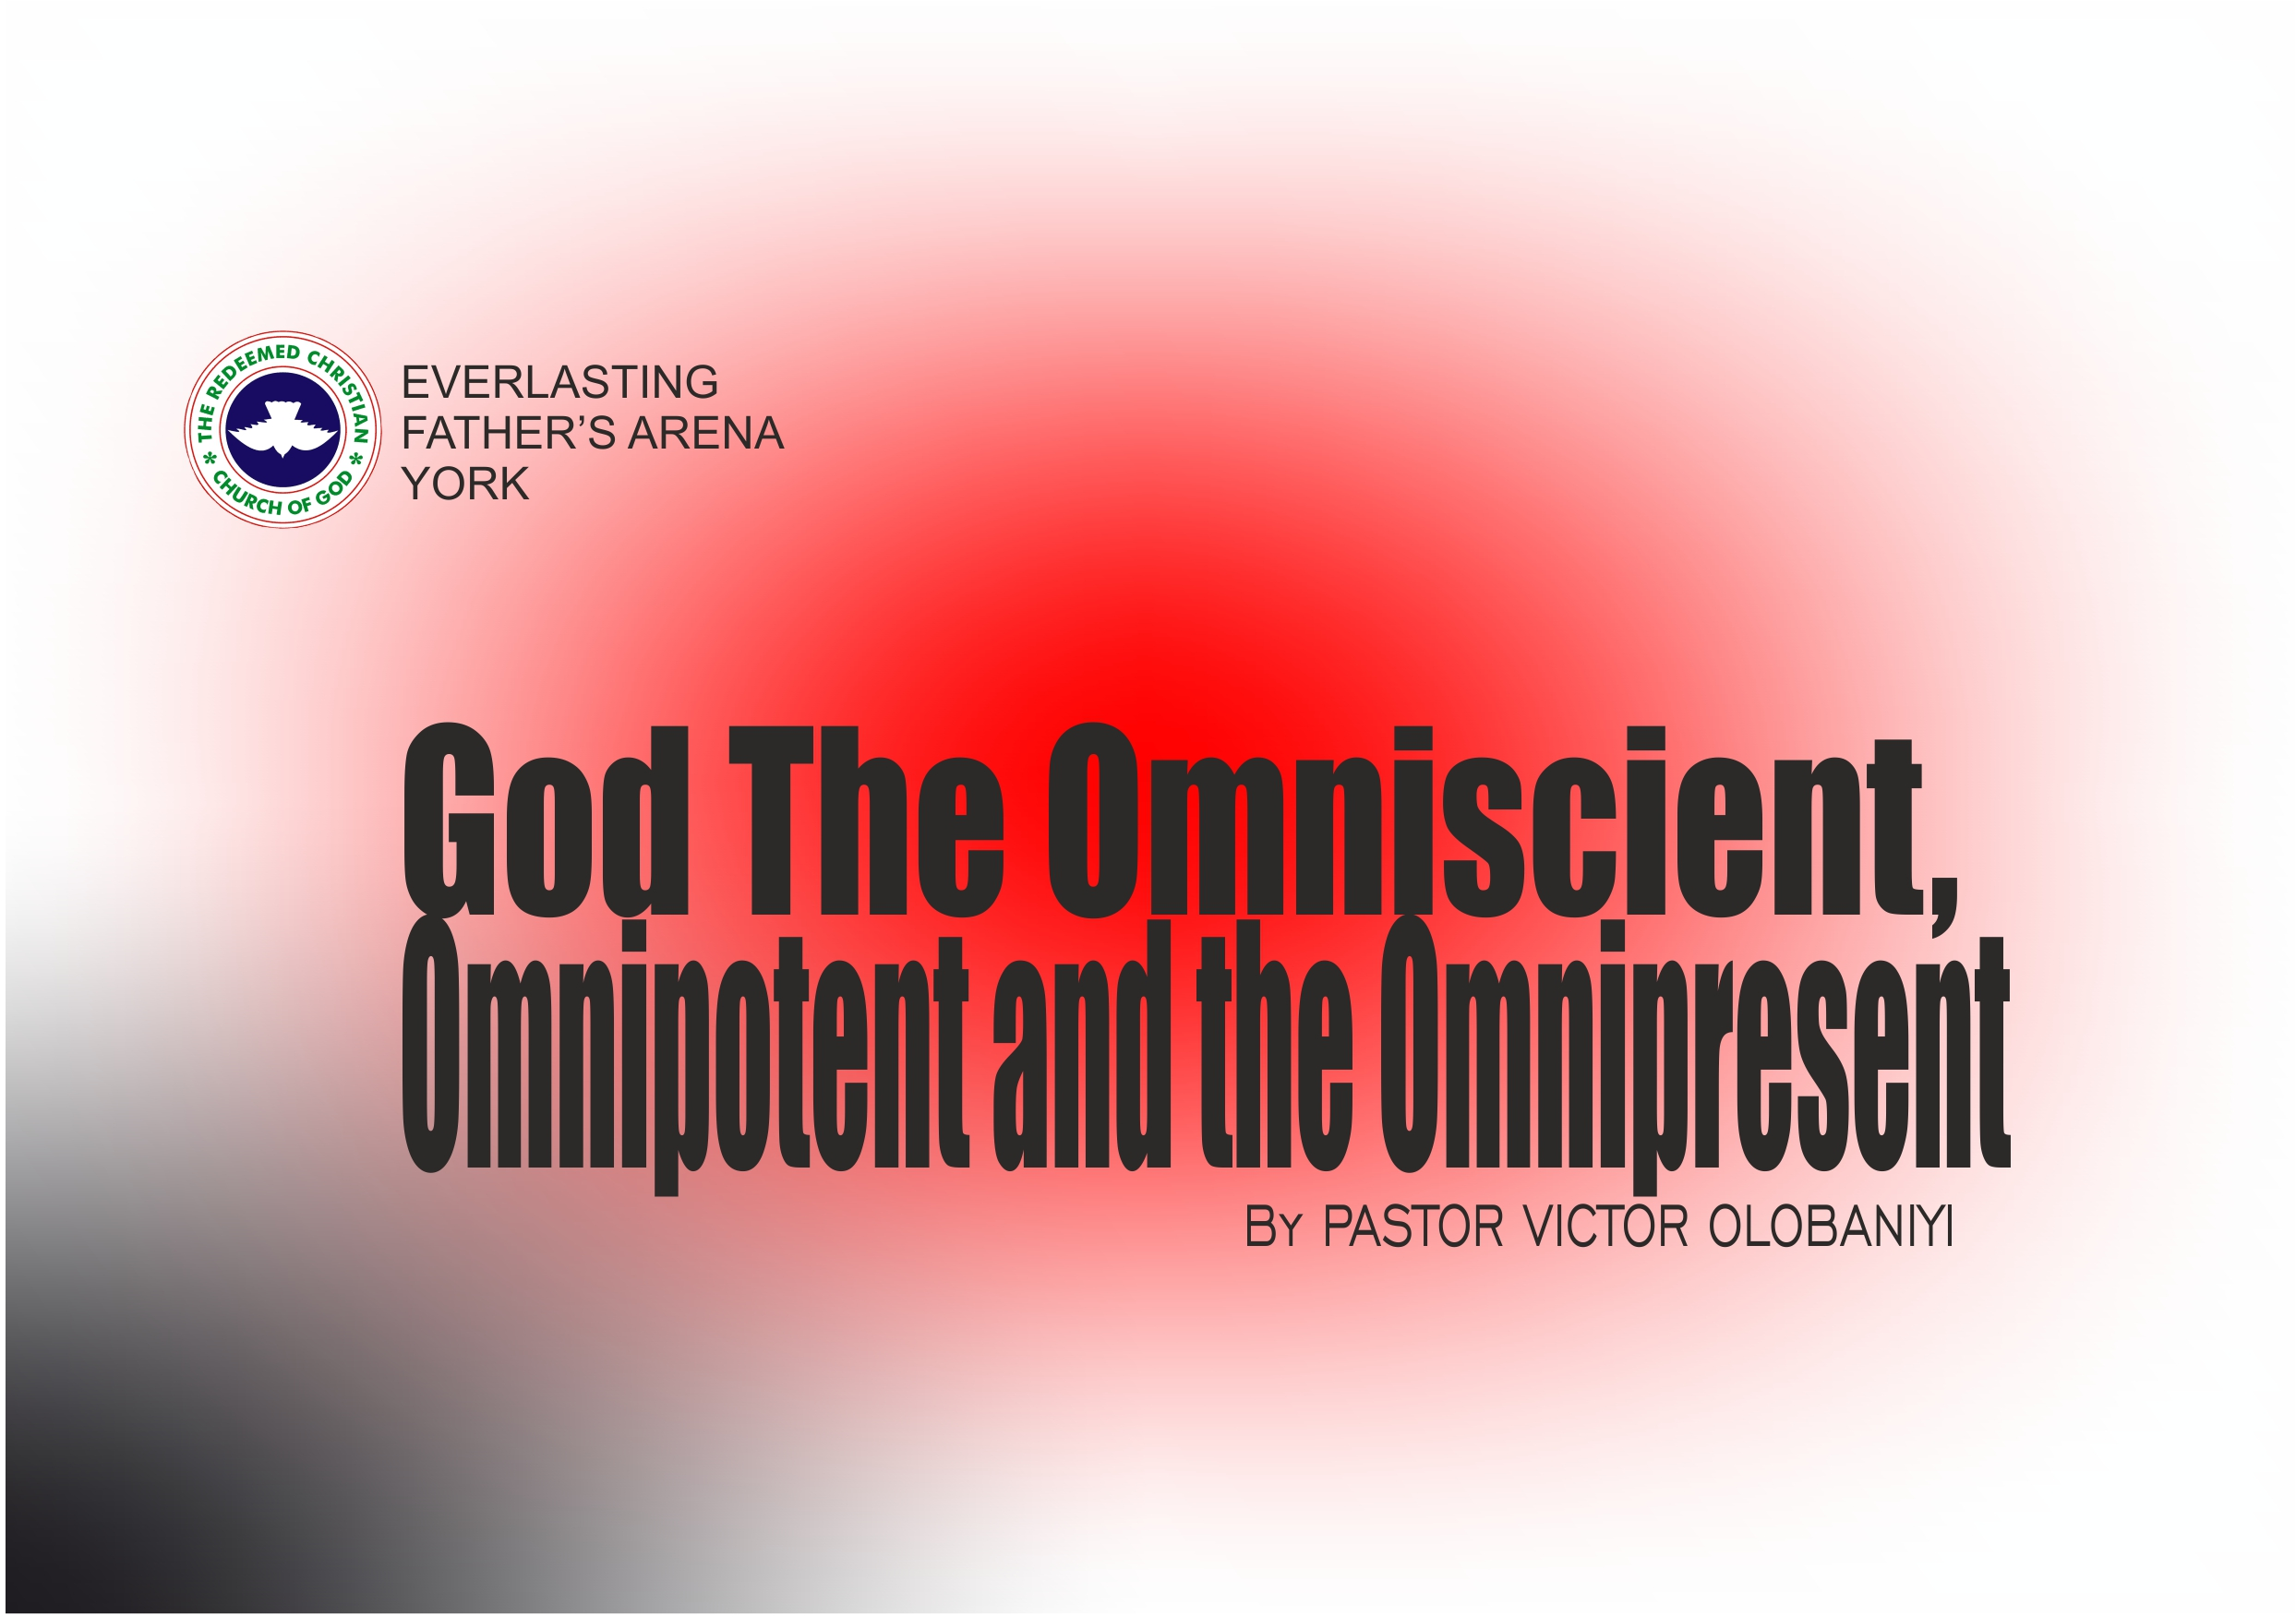 God The Omniscient, Omnipotent and Omnipresent, by Pastor Victor Olobaniyi